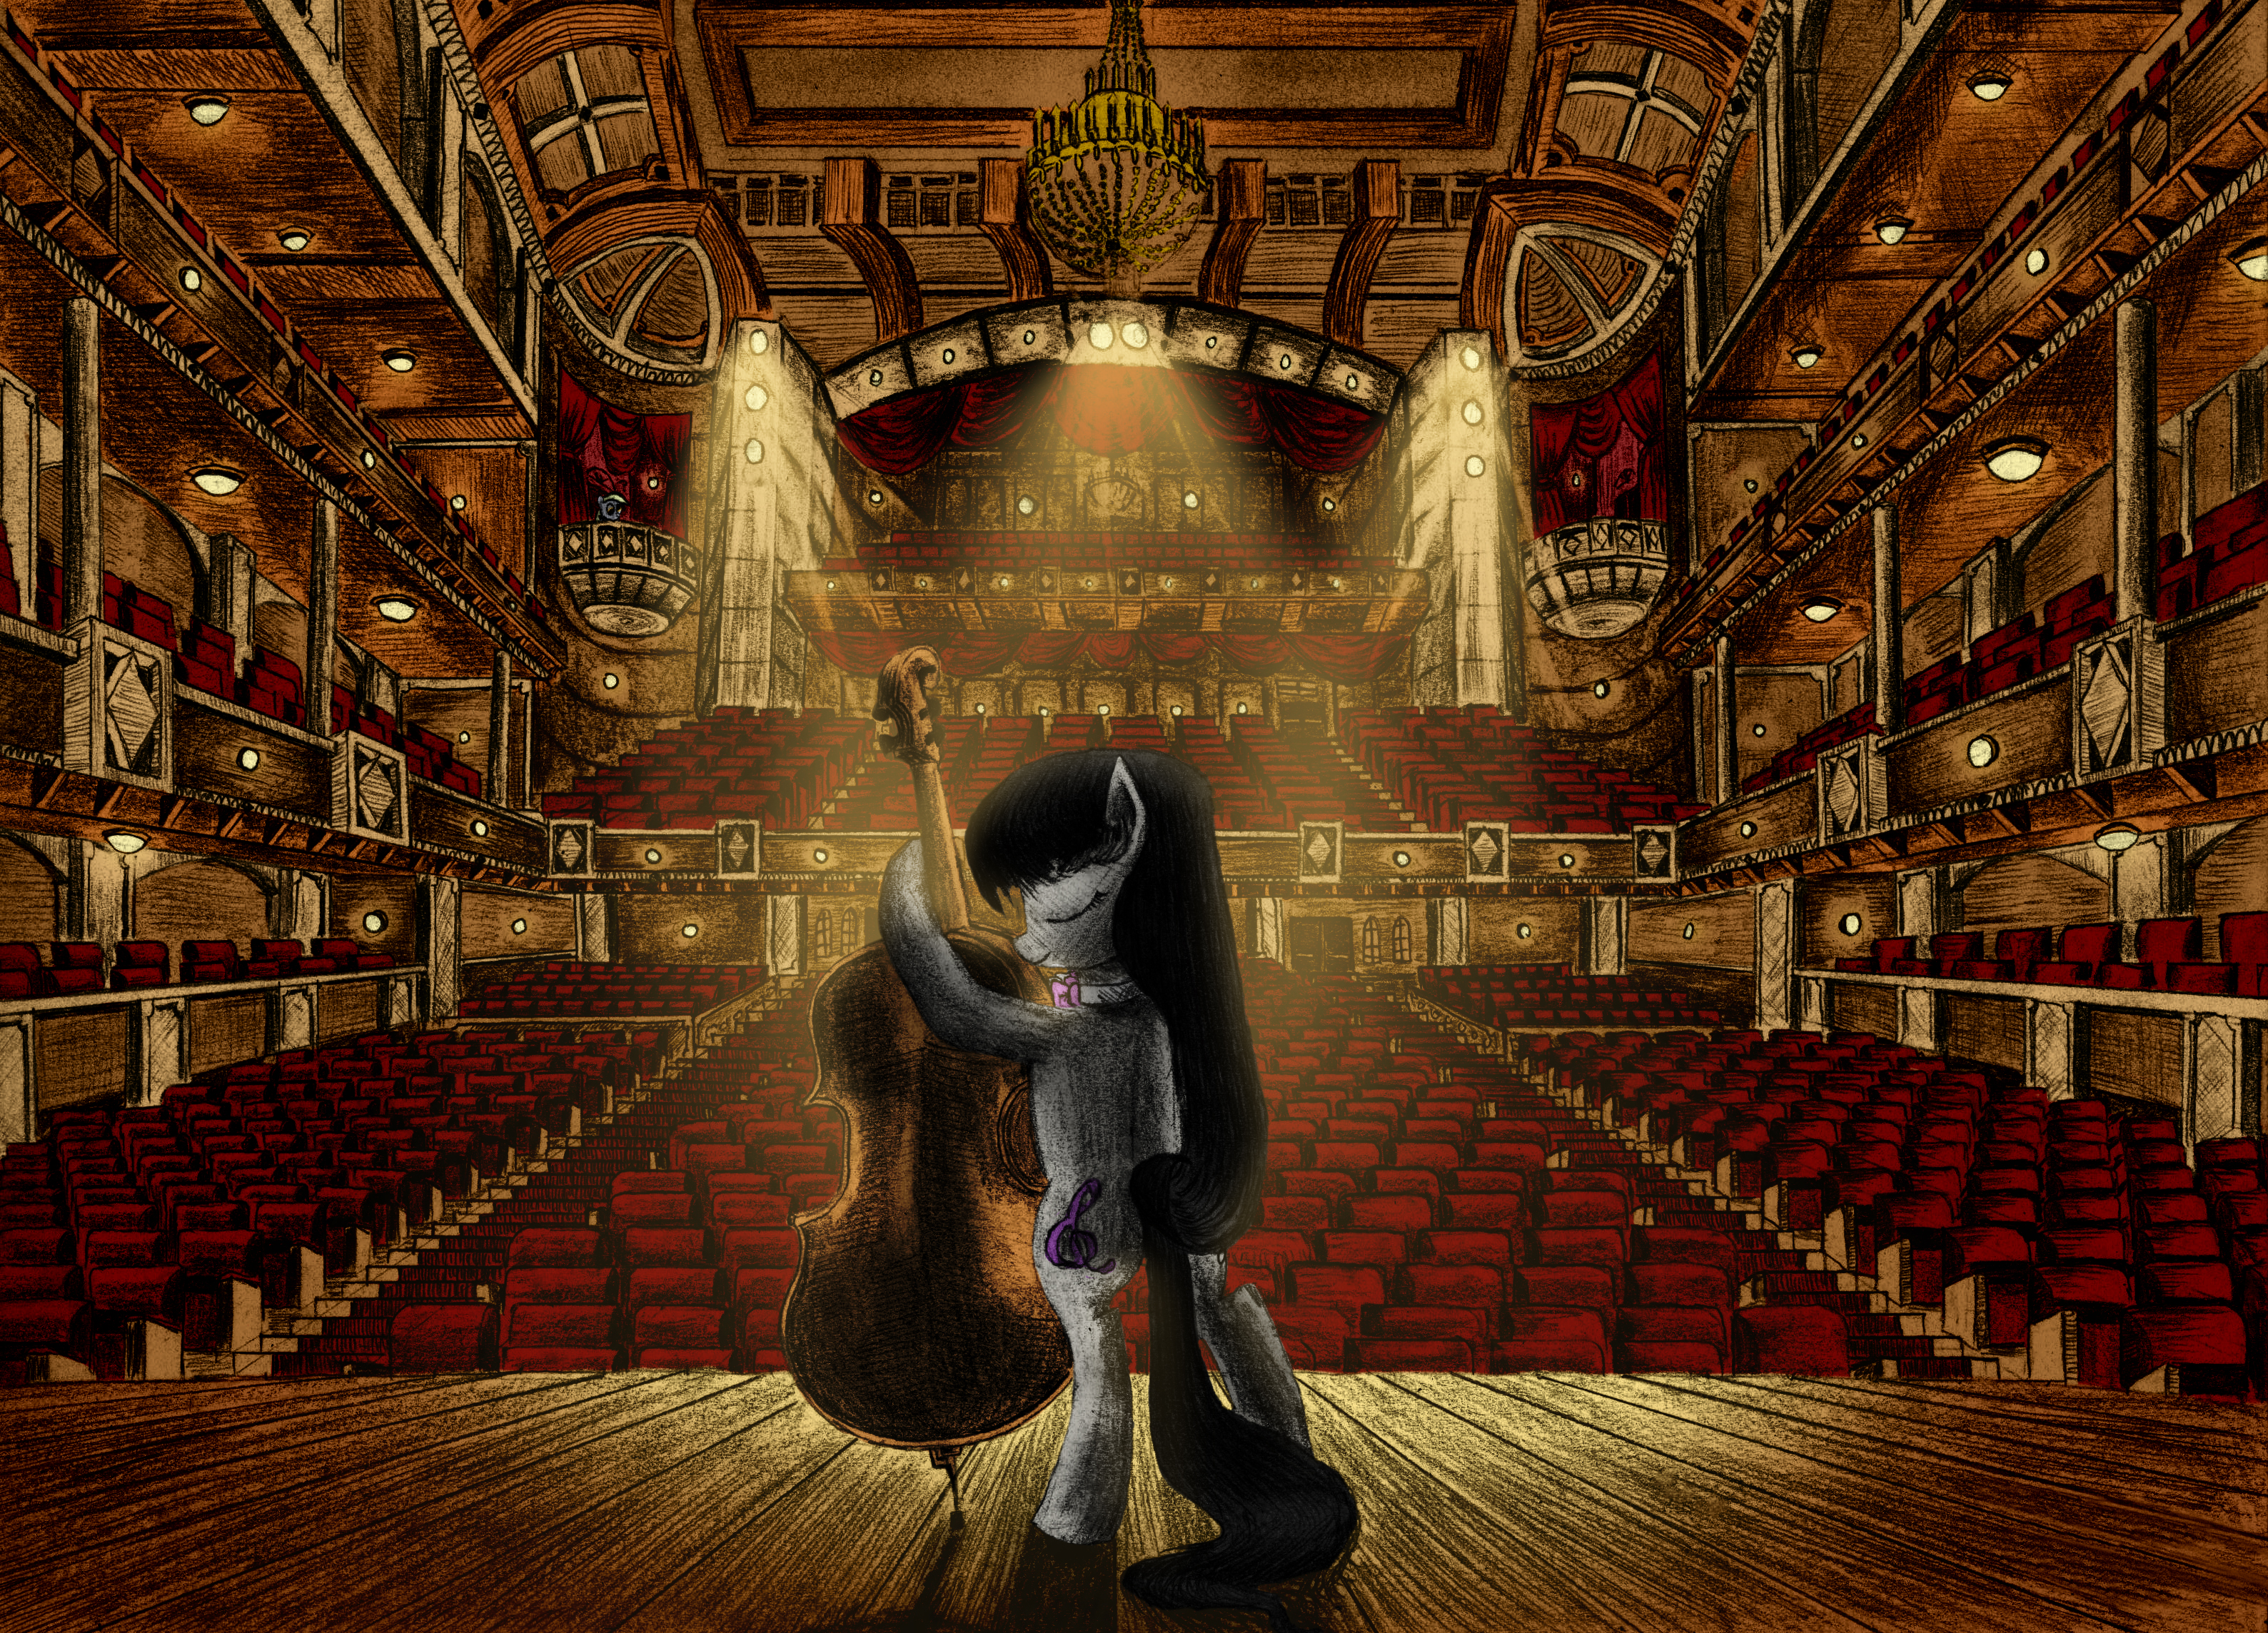 love_of_the_stage_by_metadragonart-d5930